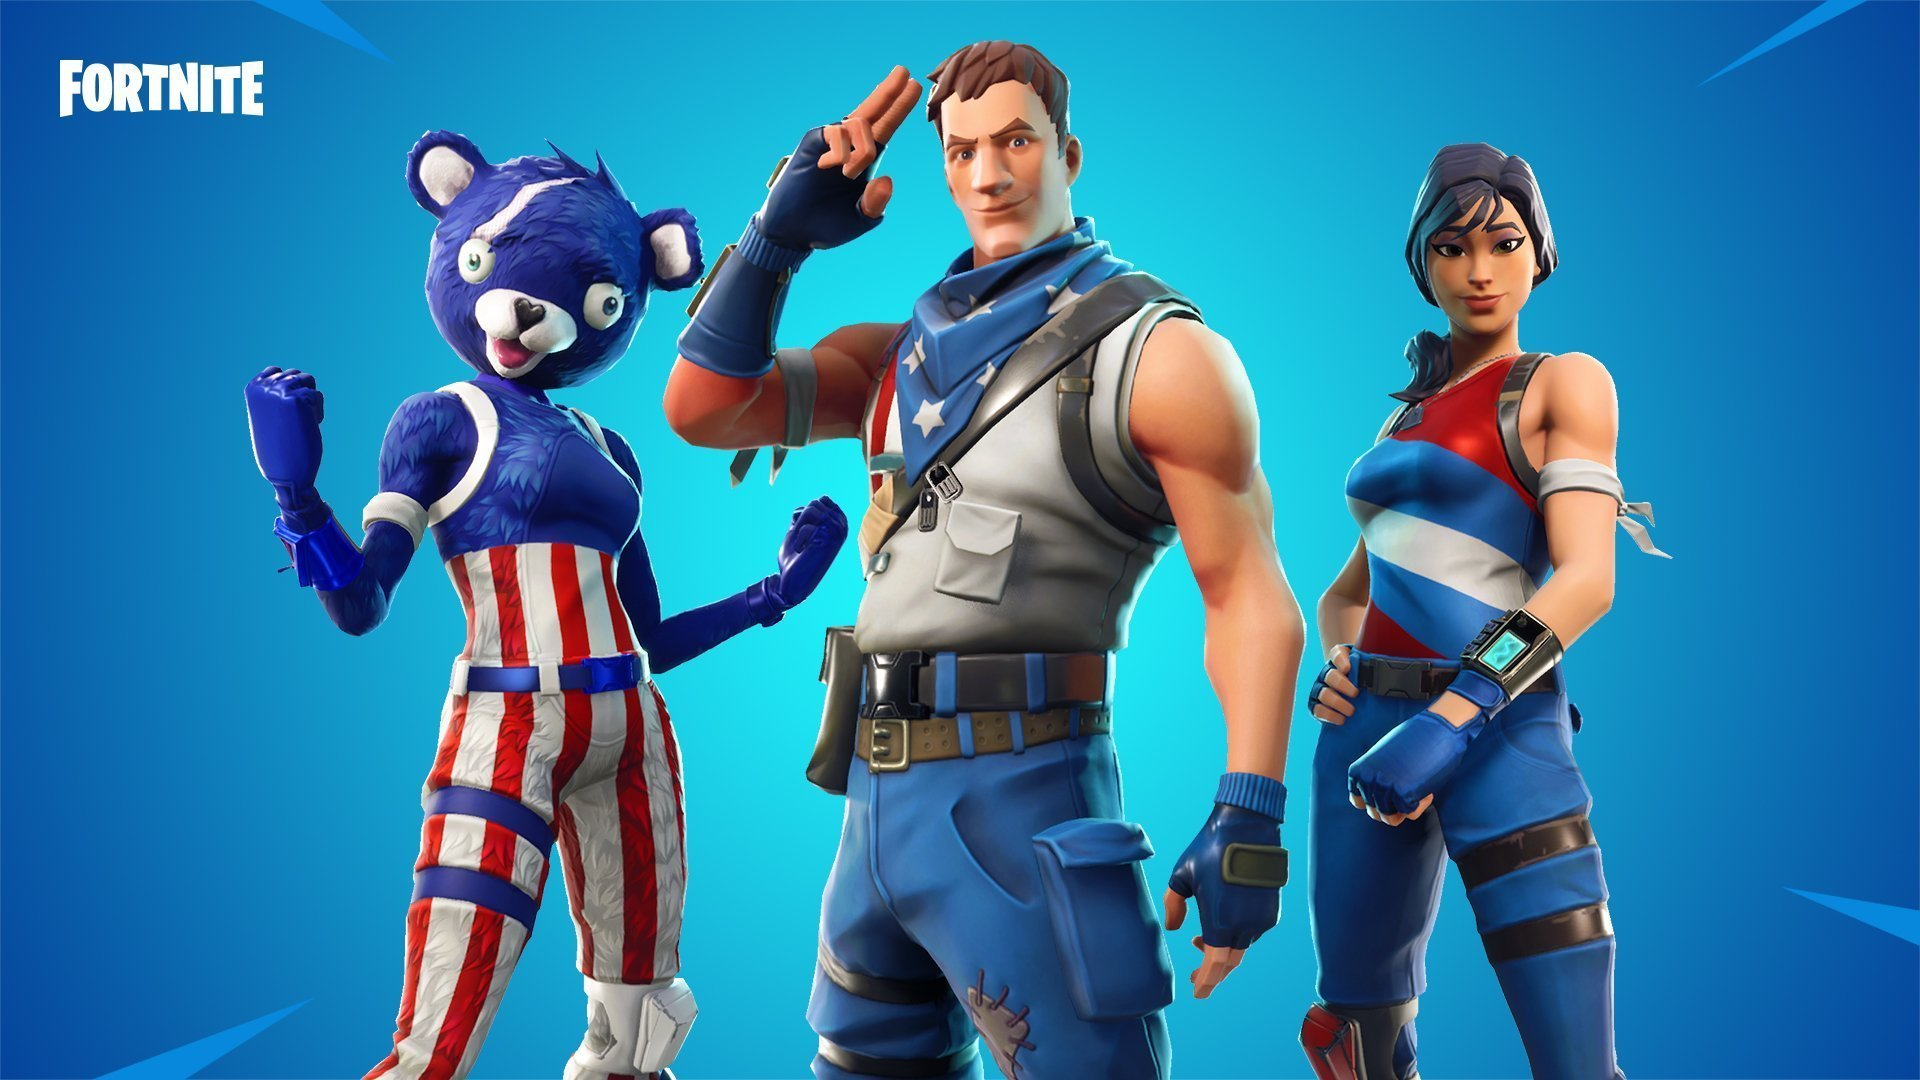 Fortnite Star Spangled Ranger Outfits   Fortnite Skins 1920x1080